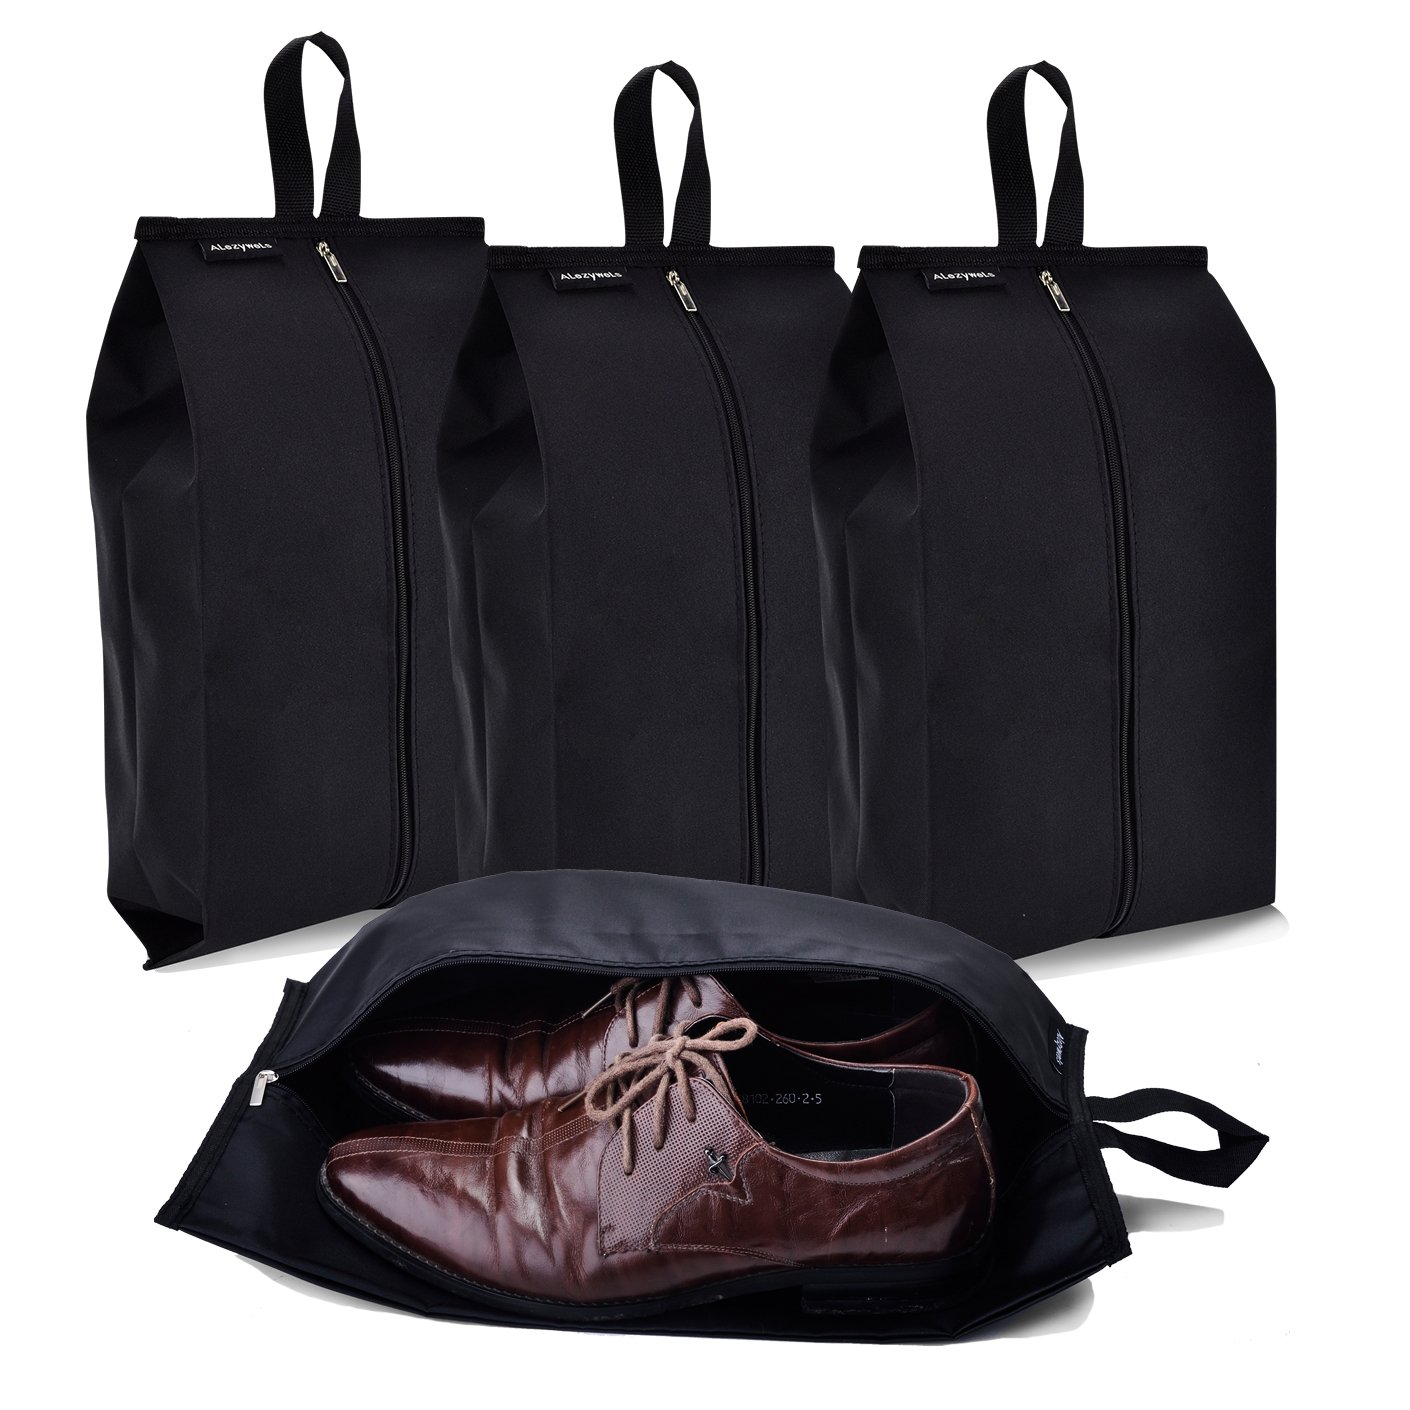 Alezywels Travel Shoe Bags Thick Nylon Waterproof Fabric with Zipper for Men or Women, 4 Pack (Black) 10483352